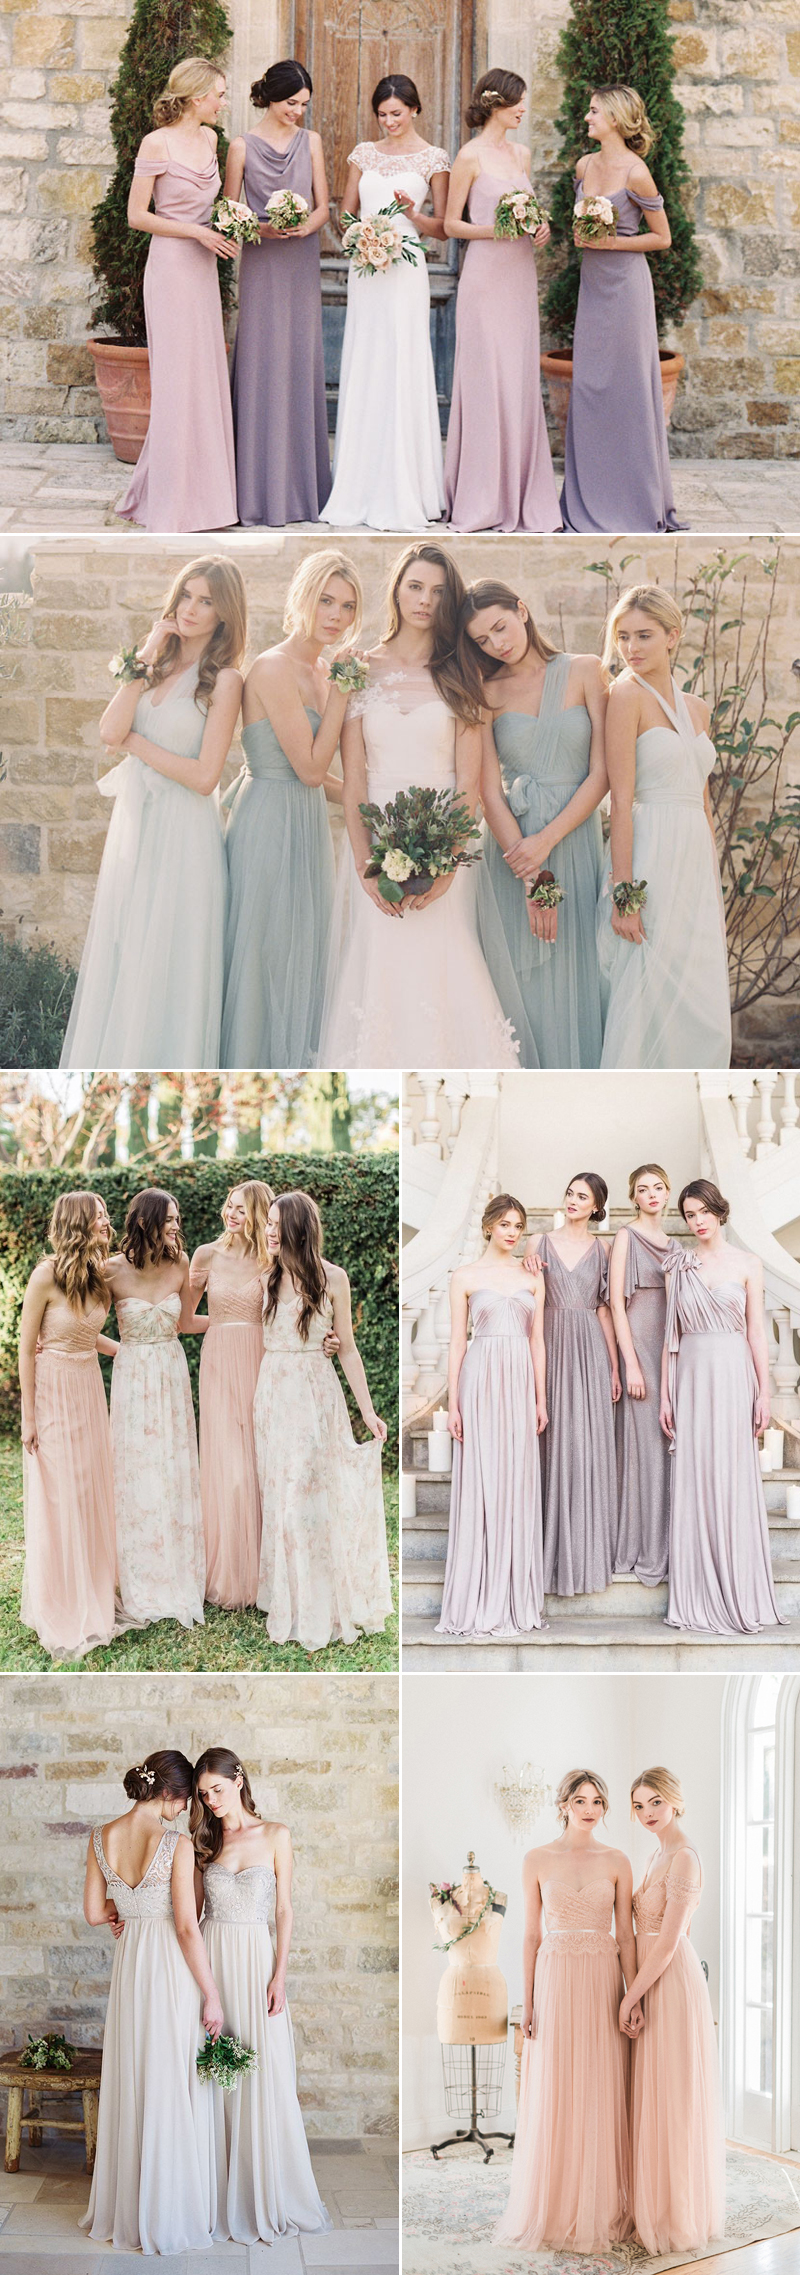 30 dreamy bridesmaid dresses for your romantic wedding praise jenny yoo ombrellifo Choice Image